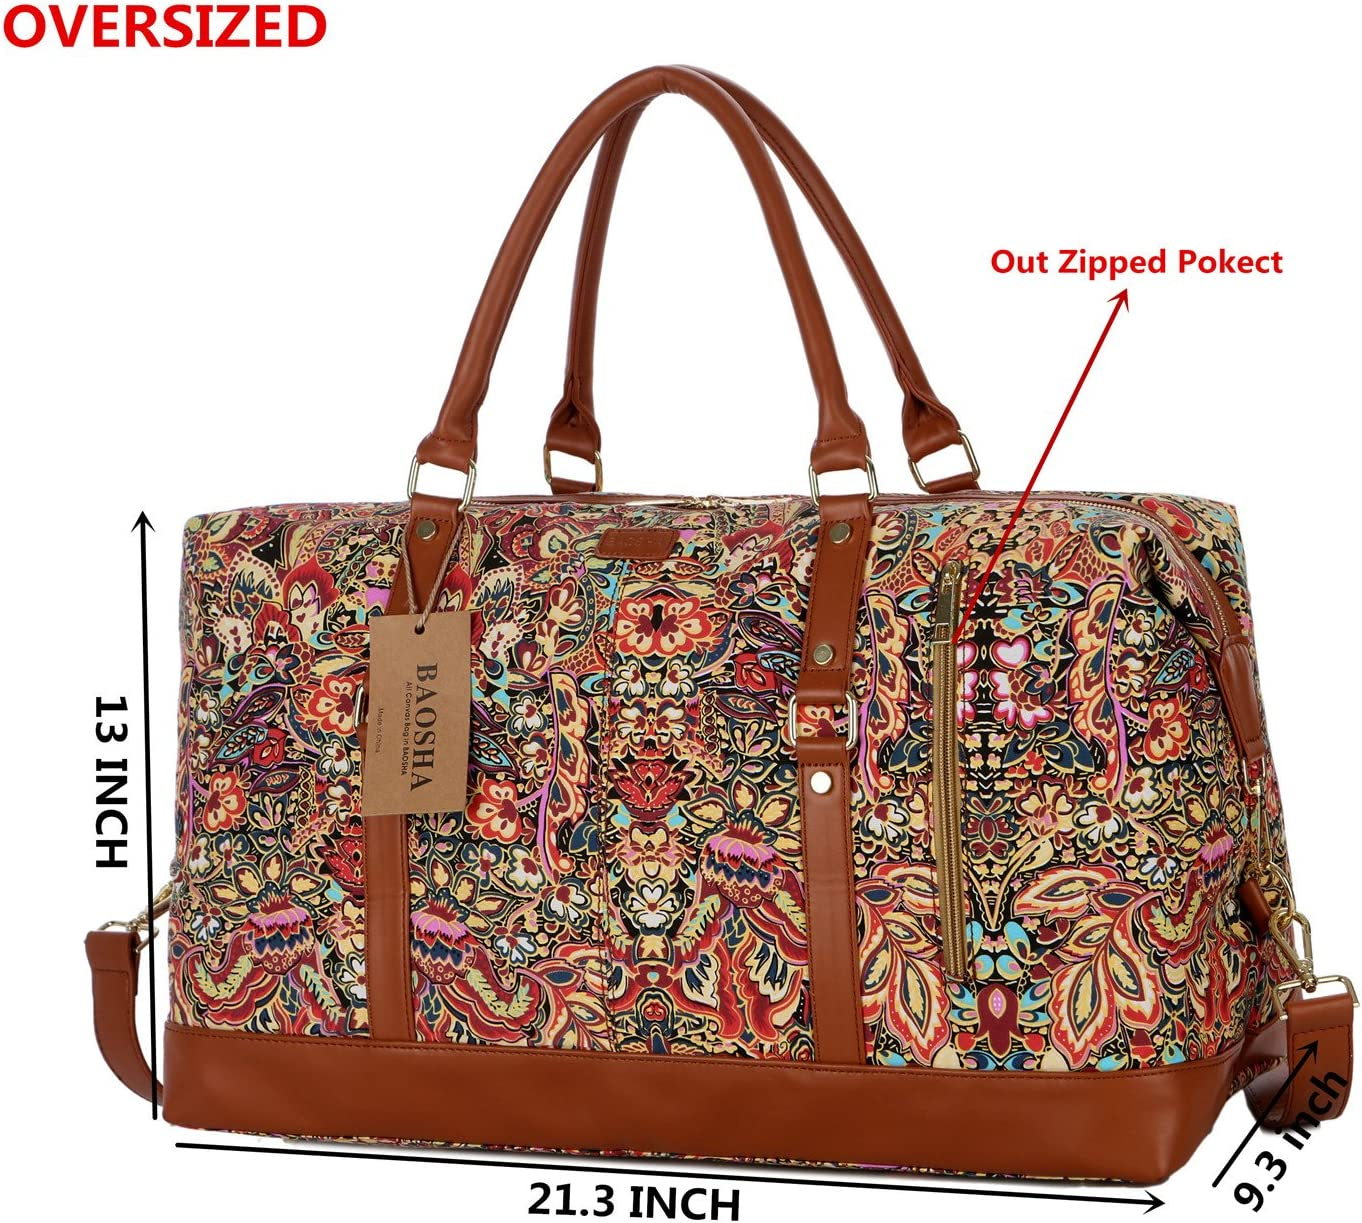 BAOSHA OVERSIZED HB-14 Travel Duffel Bag Carry on Weekender Overnight Bag For Women Multicolour